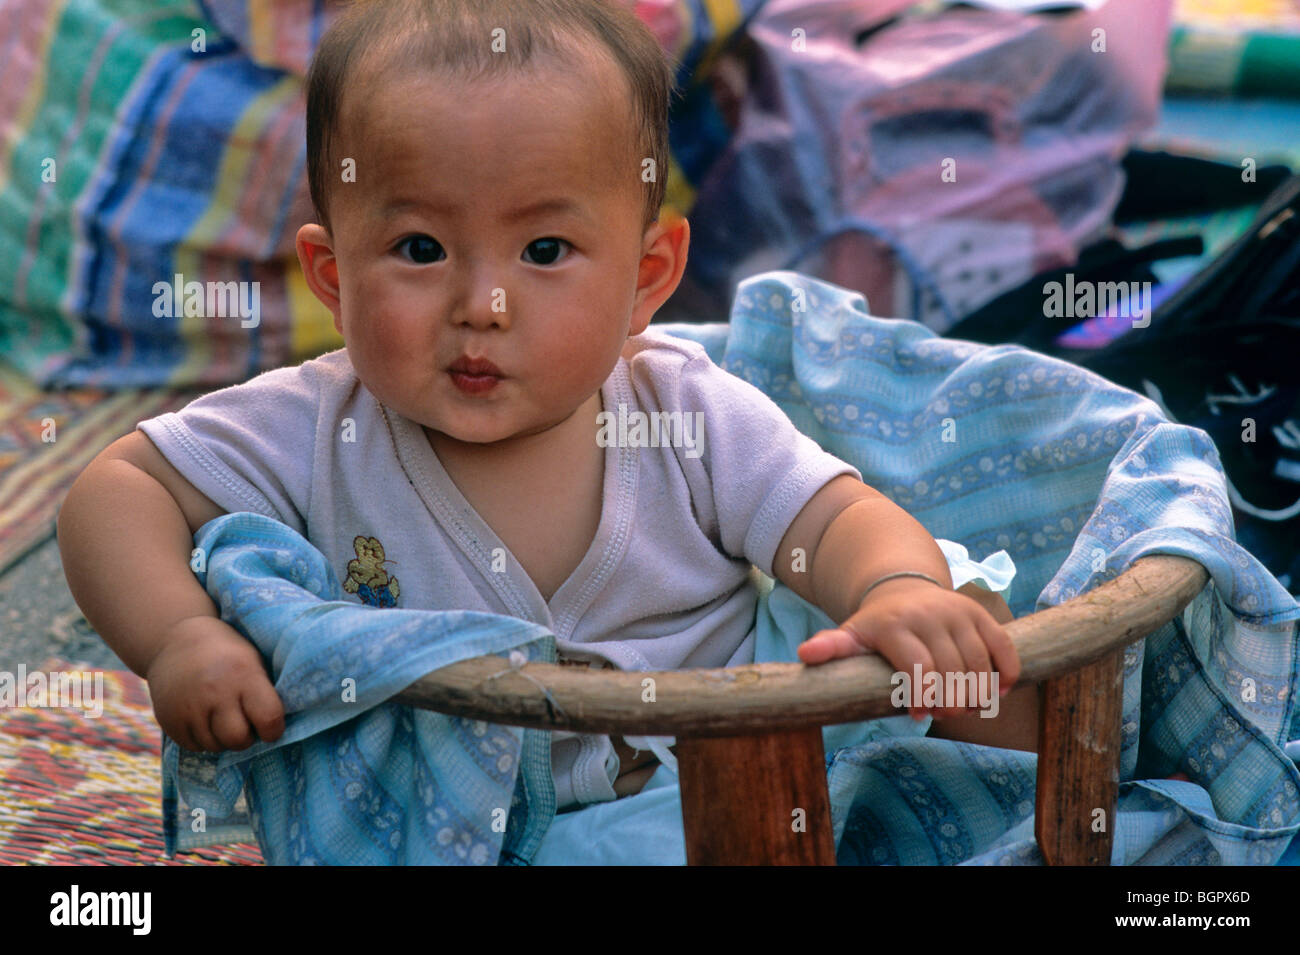 At evening street market in Luang Prabang, vendor's baby in a basket sports an impish grin. Laos, Southeast - Stock Image